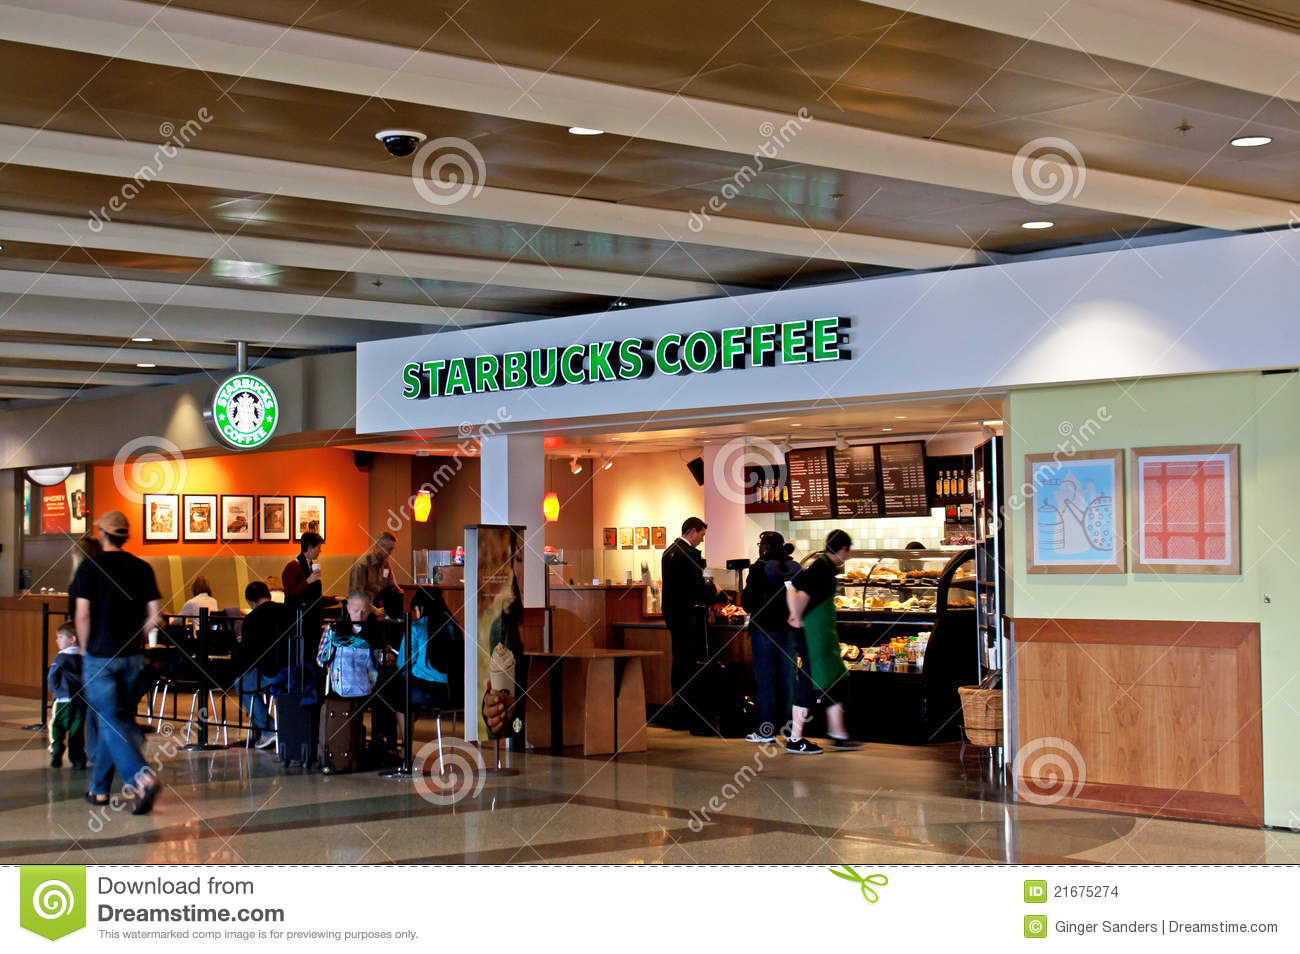 Airport Starbucks Coffee Shop Stock Images - Image: 21675274